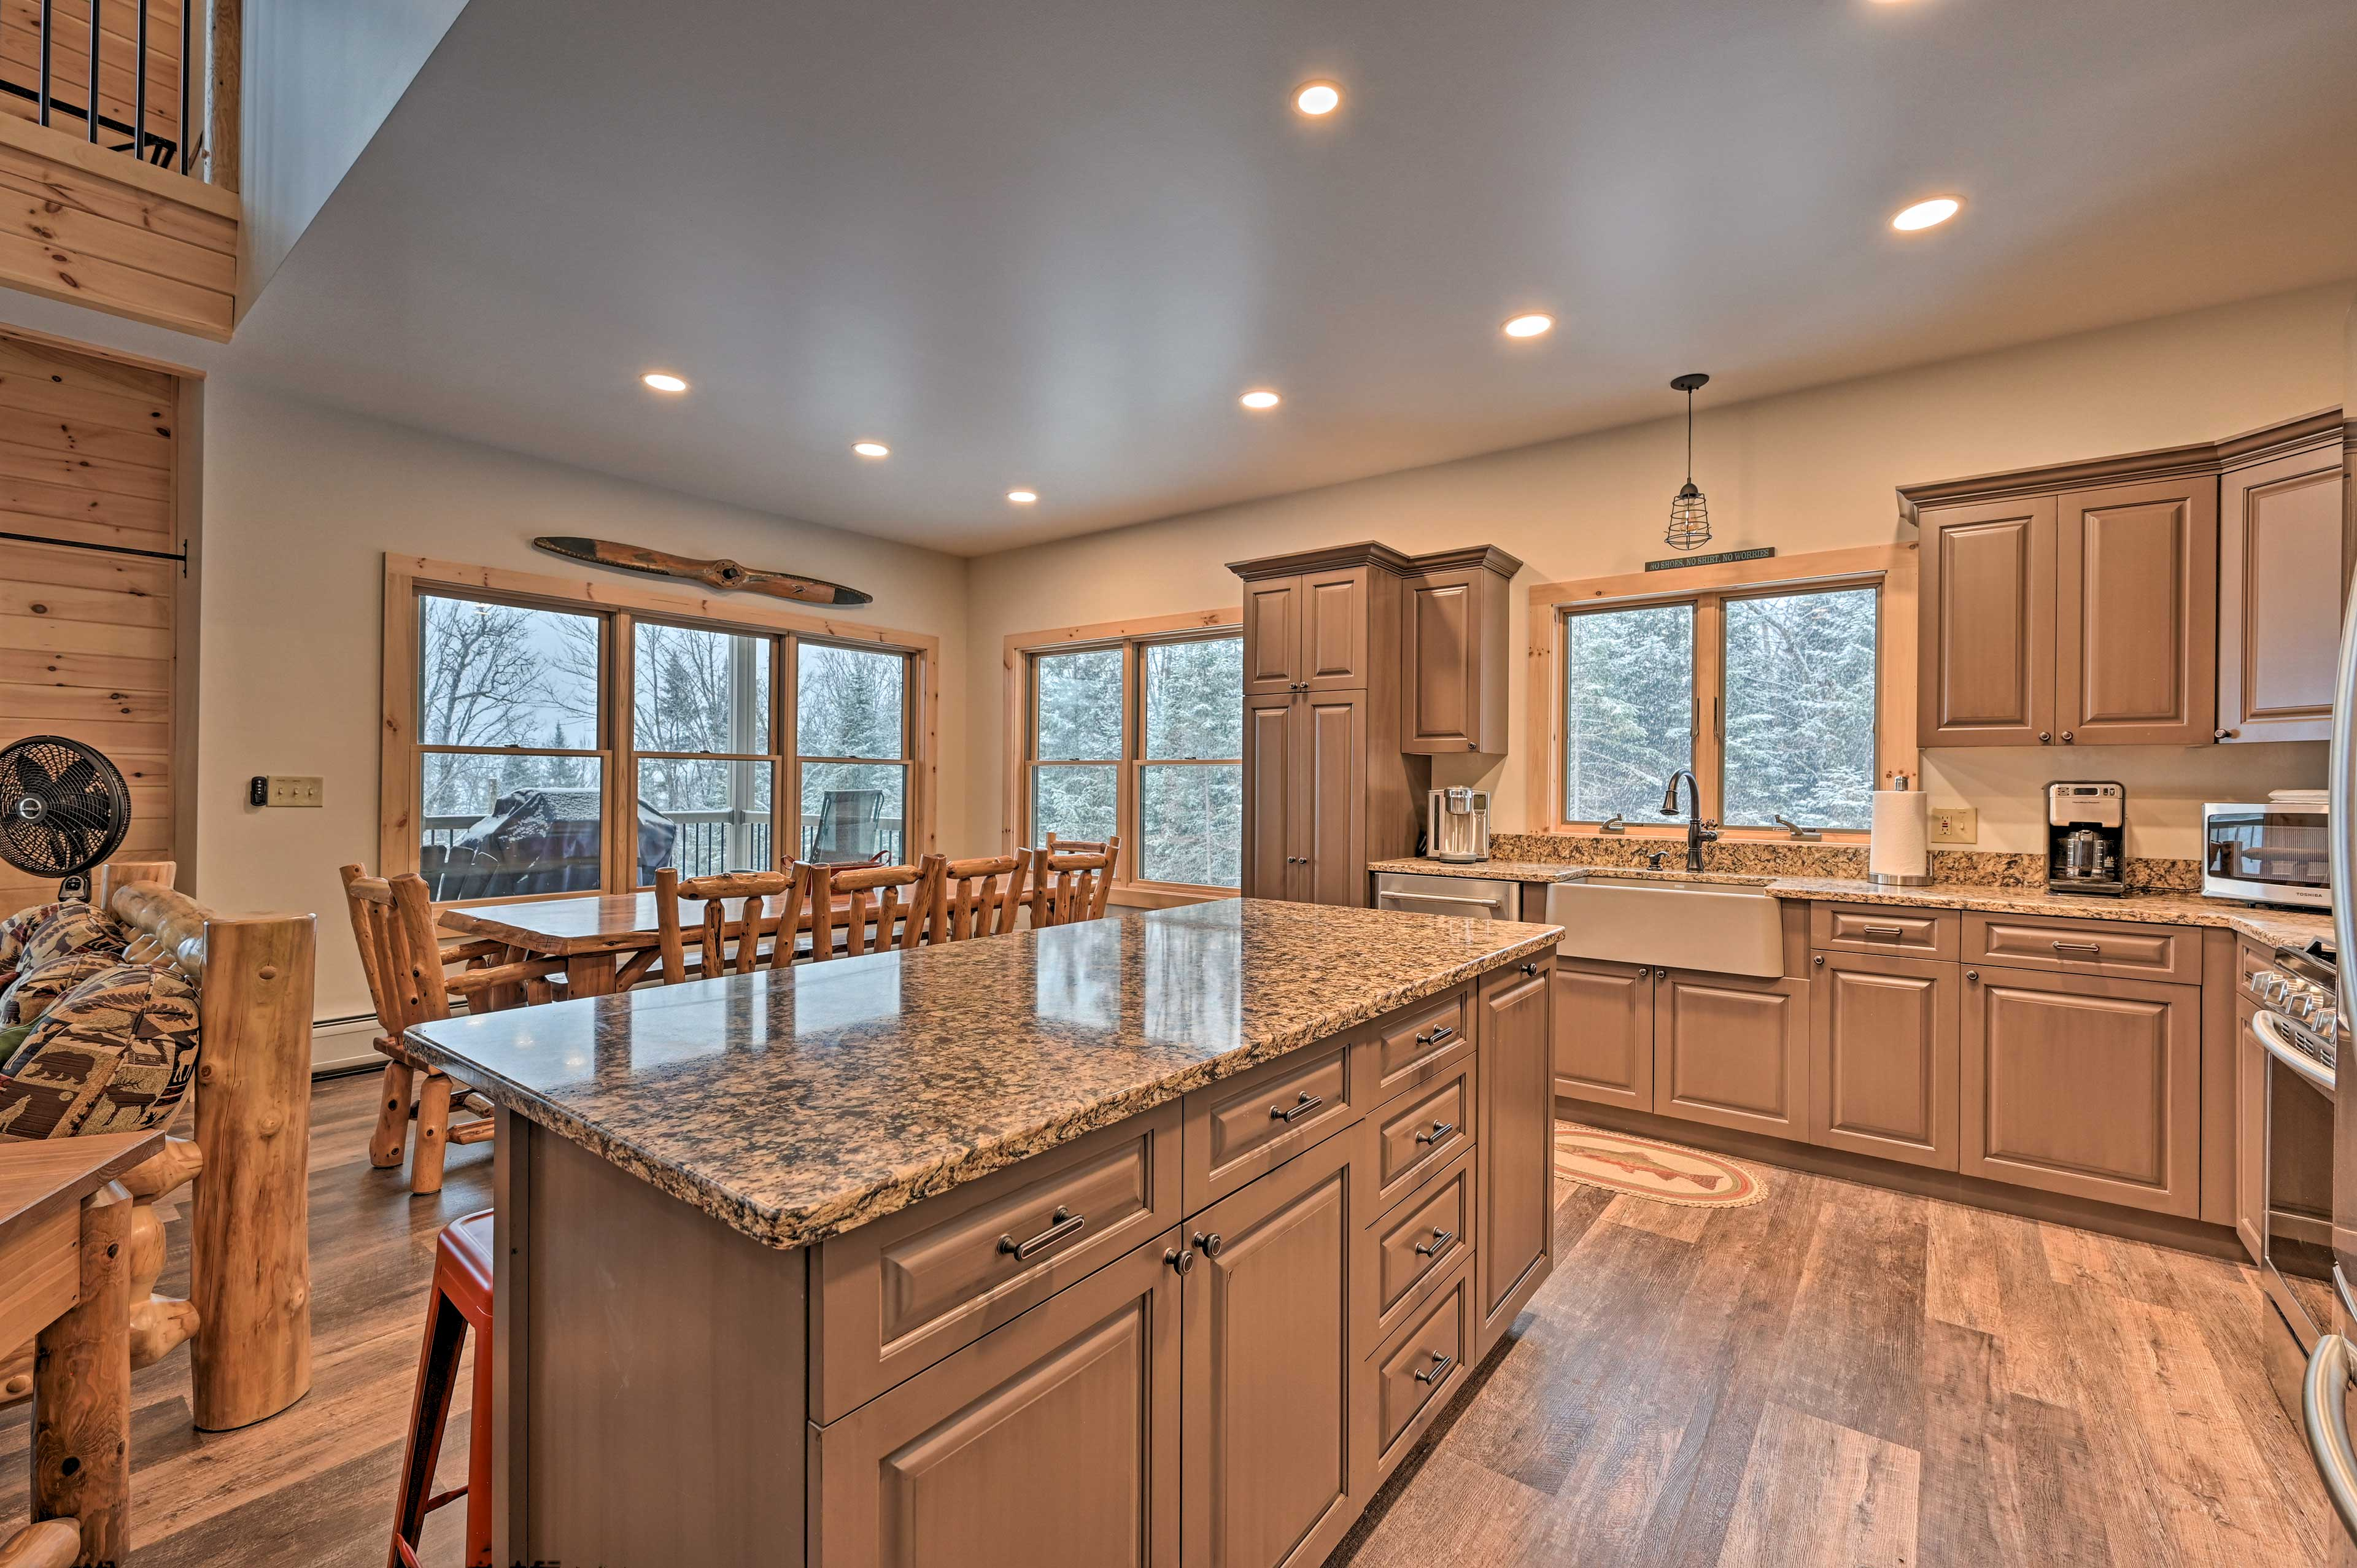 The kitchen is the perfect entertaining space.